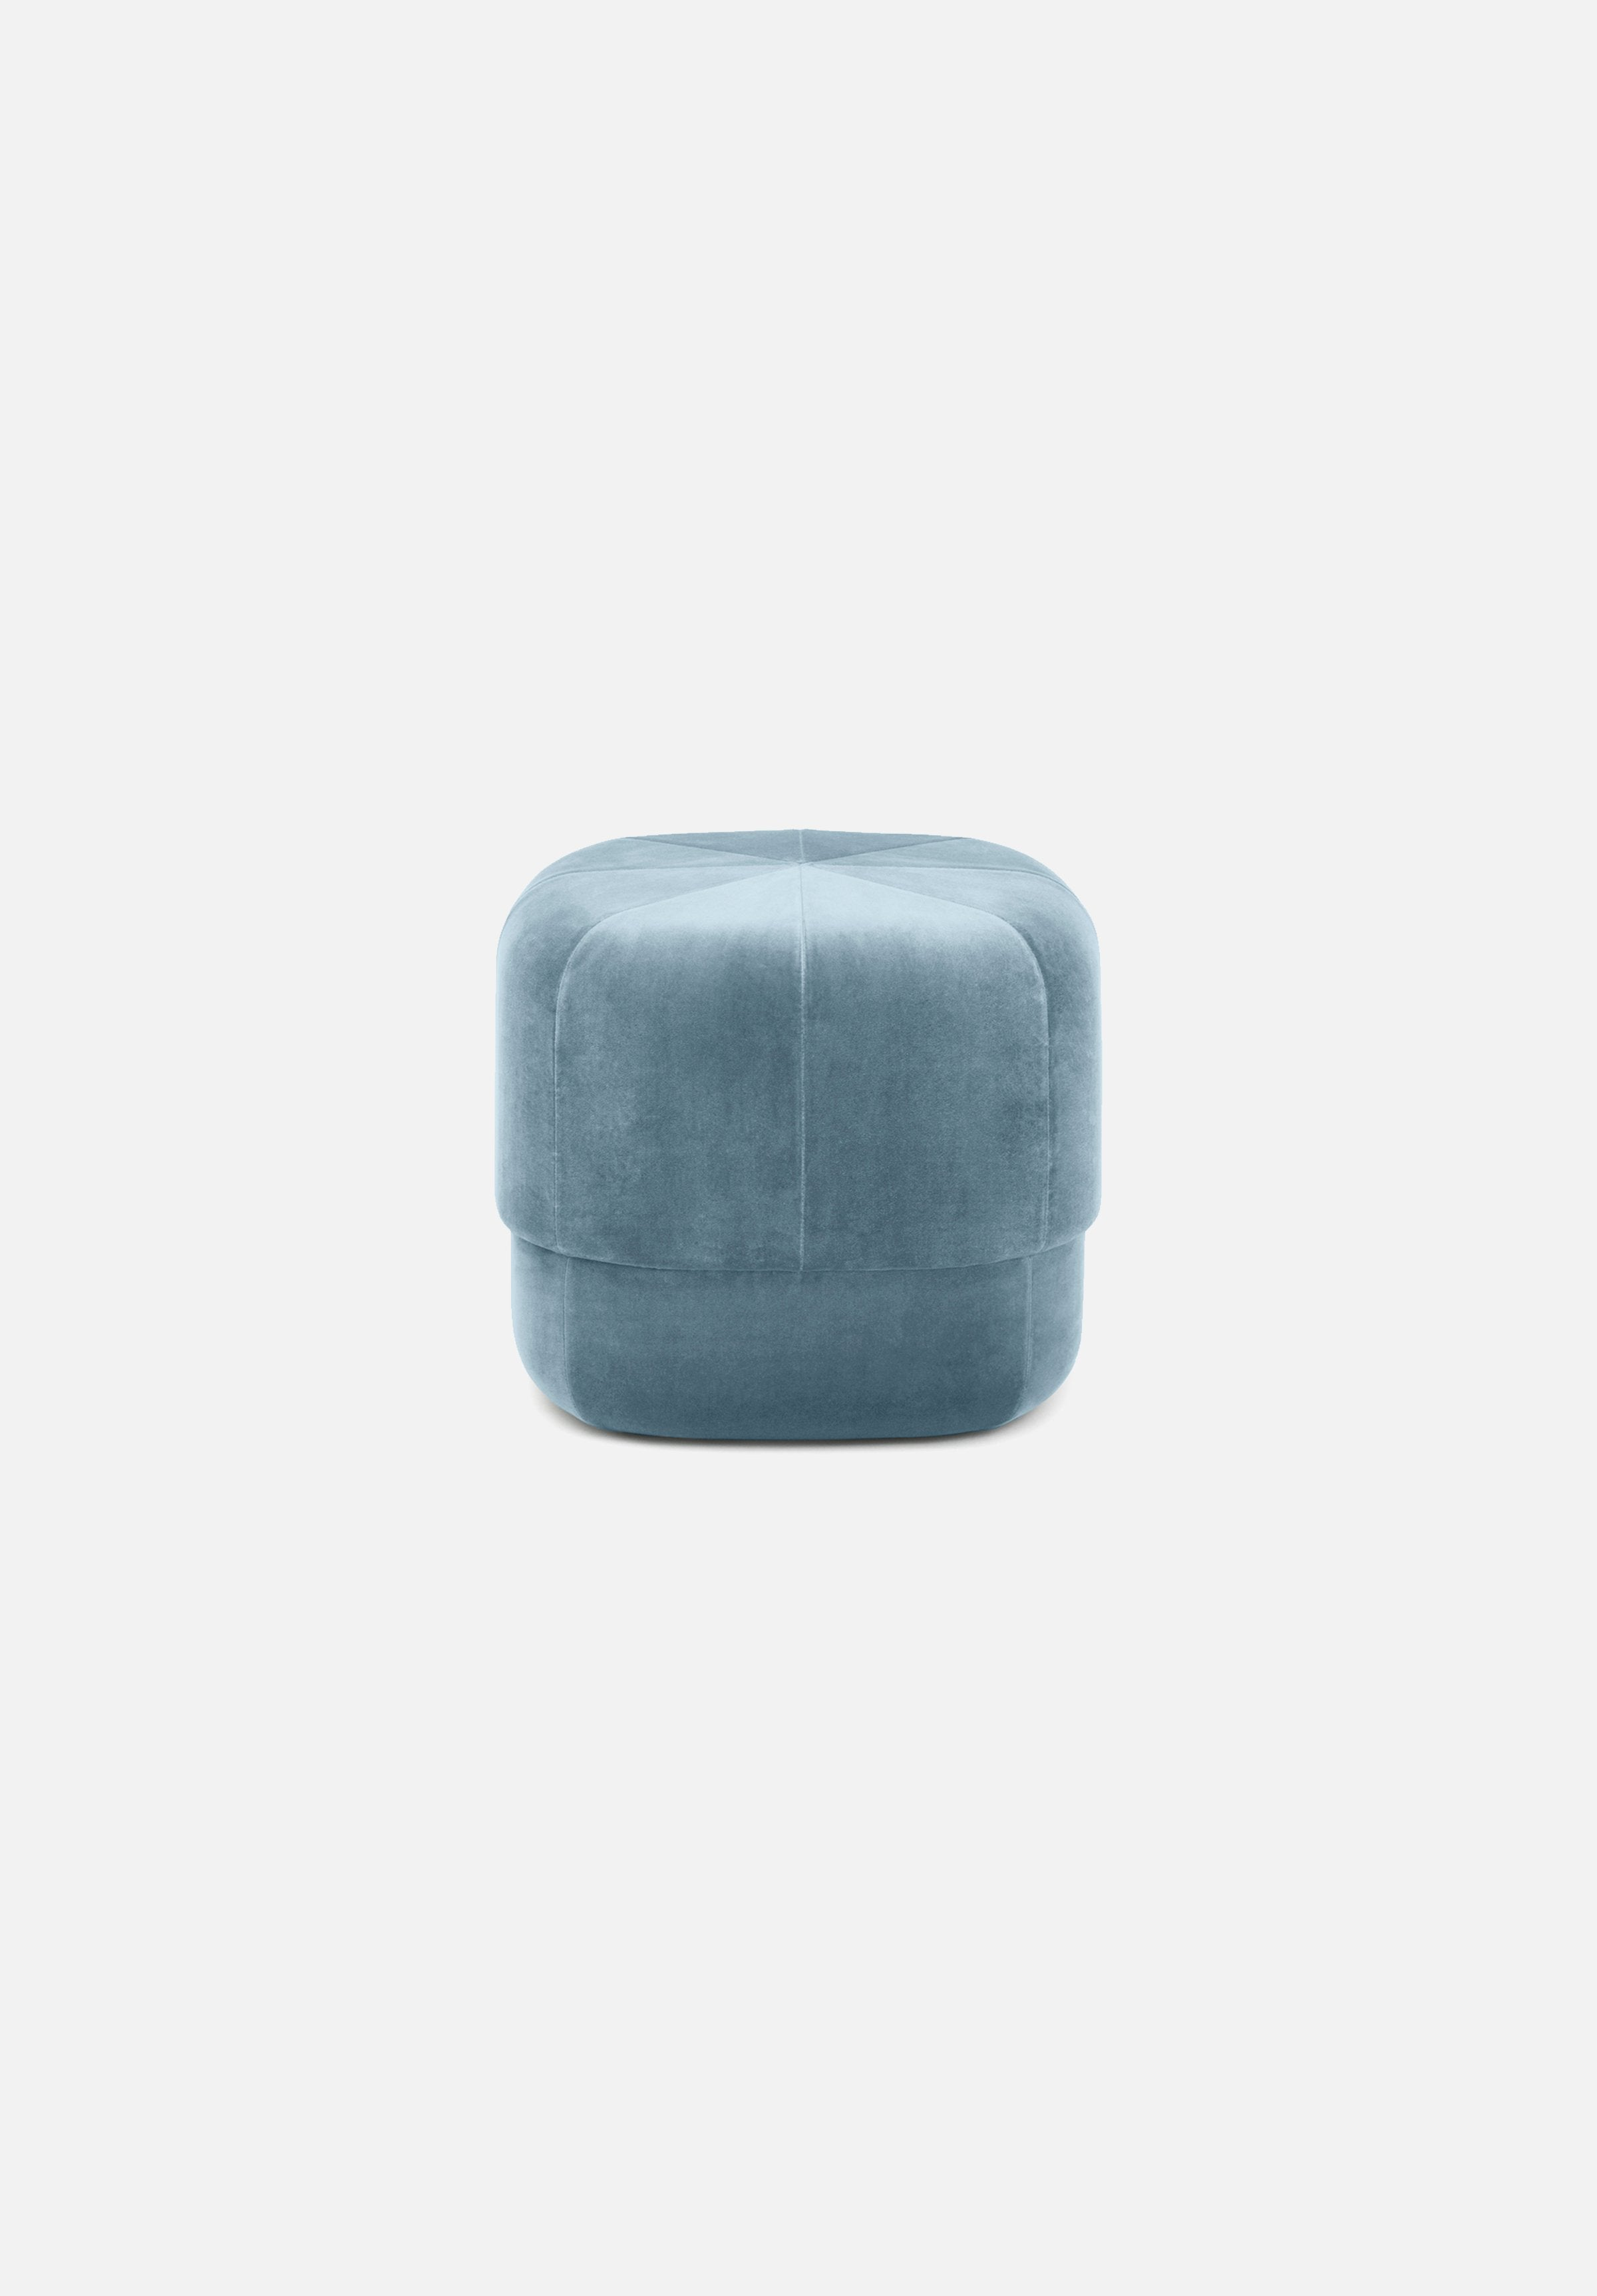 Circus Pouf — Small-Simon Legald-Normann Copenhagen-Light Blue-Average